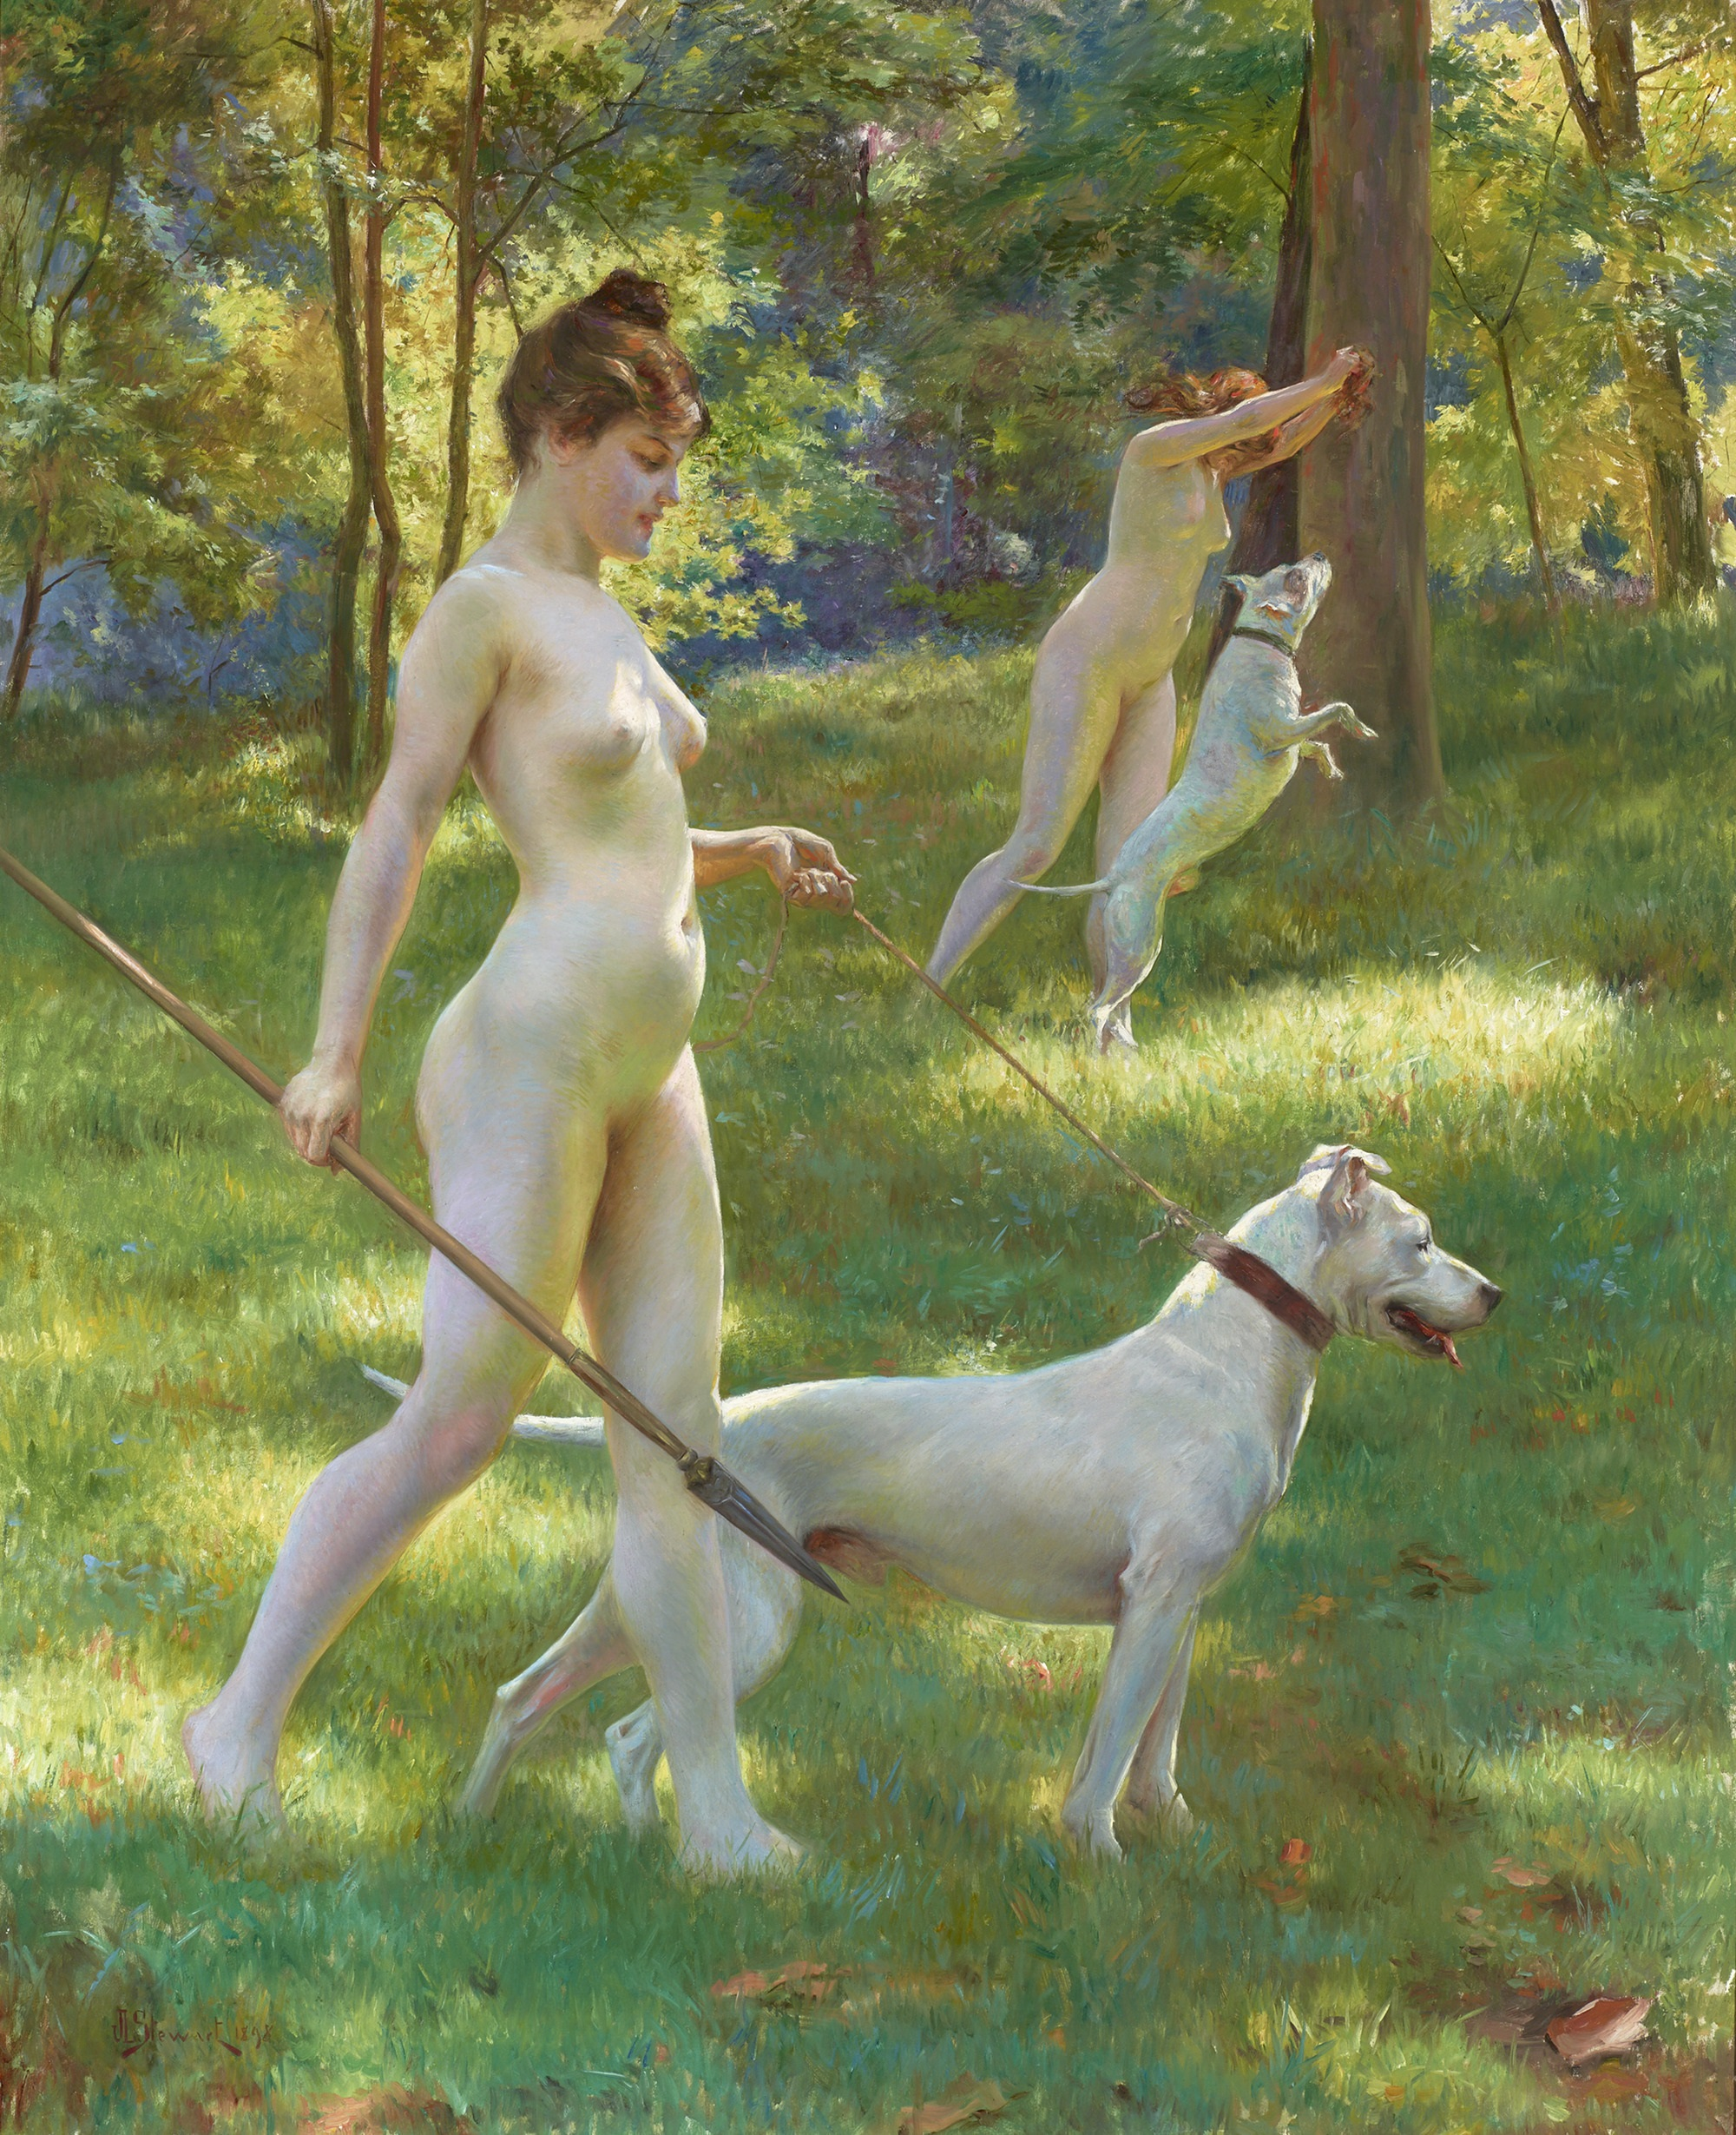 nude-women-and-a-deer